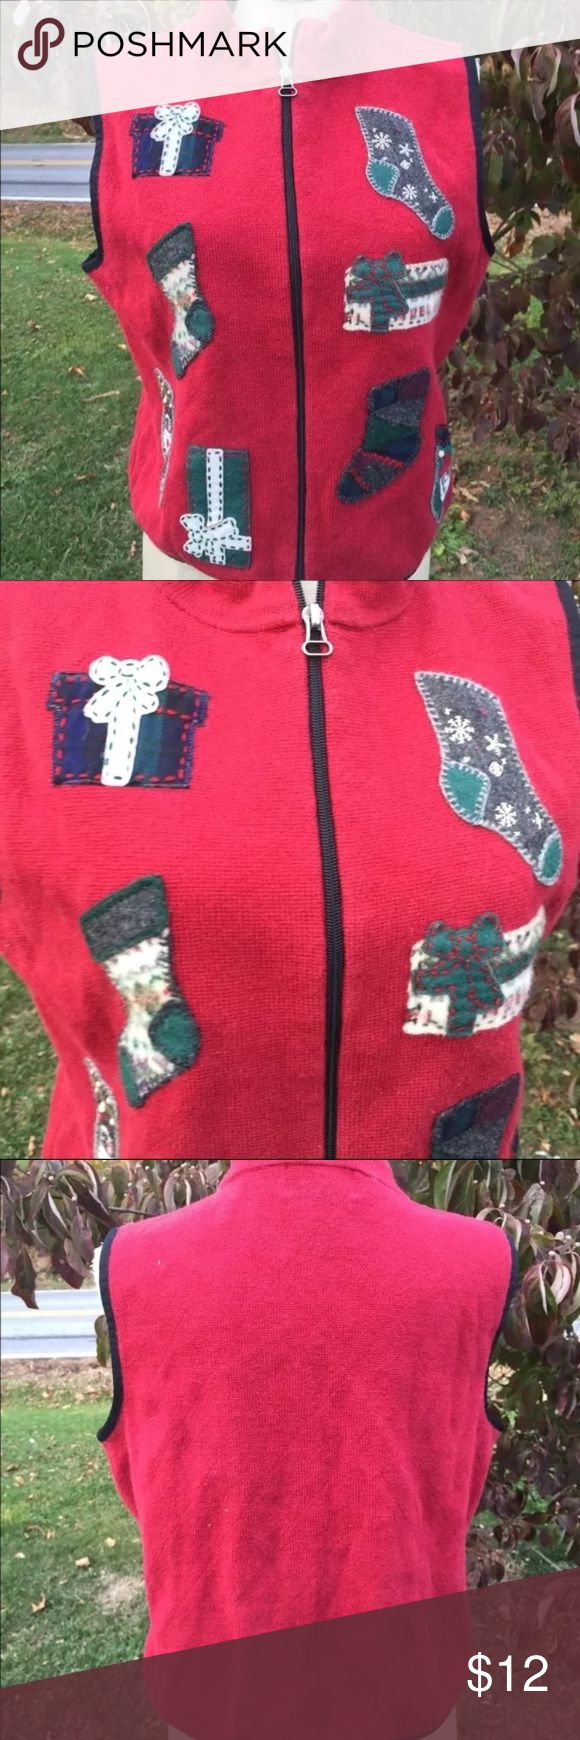 Ugly Christmas Sweater Vest Woolrich Size Medium Size medium. Super gently preowned. Be sure to view the other items in our closet. We offer  women's, Mens and kids items in a variety of sizes. Bundle and save!! We love reasonable offers!! Thank you for viewing our item!! Woolrich Sweaters